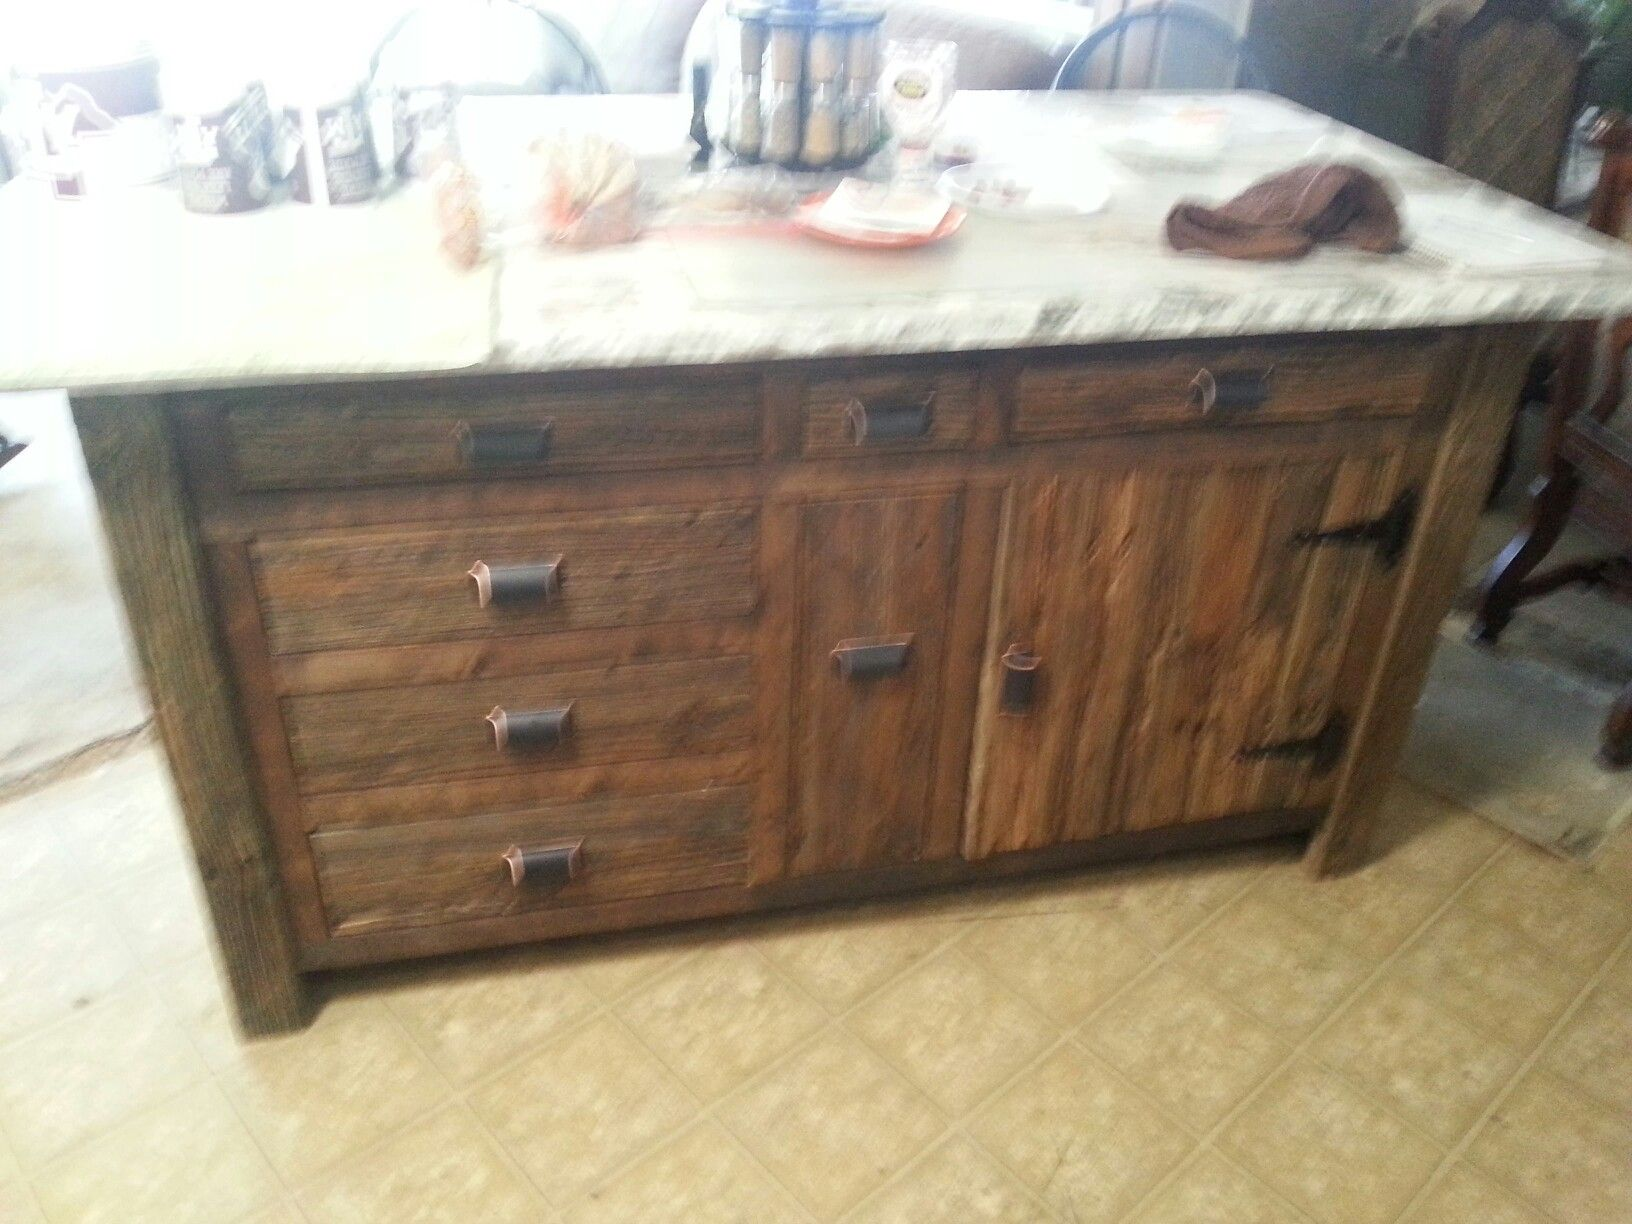 Marble Top Kitchen Island Cabinet Made Of Old 2x4 Treated Deck Board From Demolition In Th Marble Top Kitchen Island Kitchen Island Cabinets Kitchen Cabinets